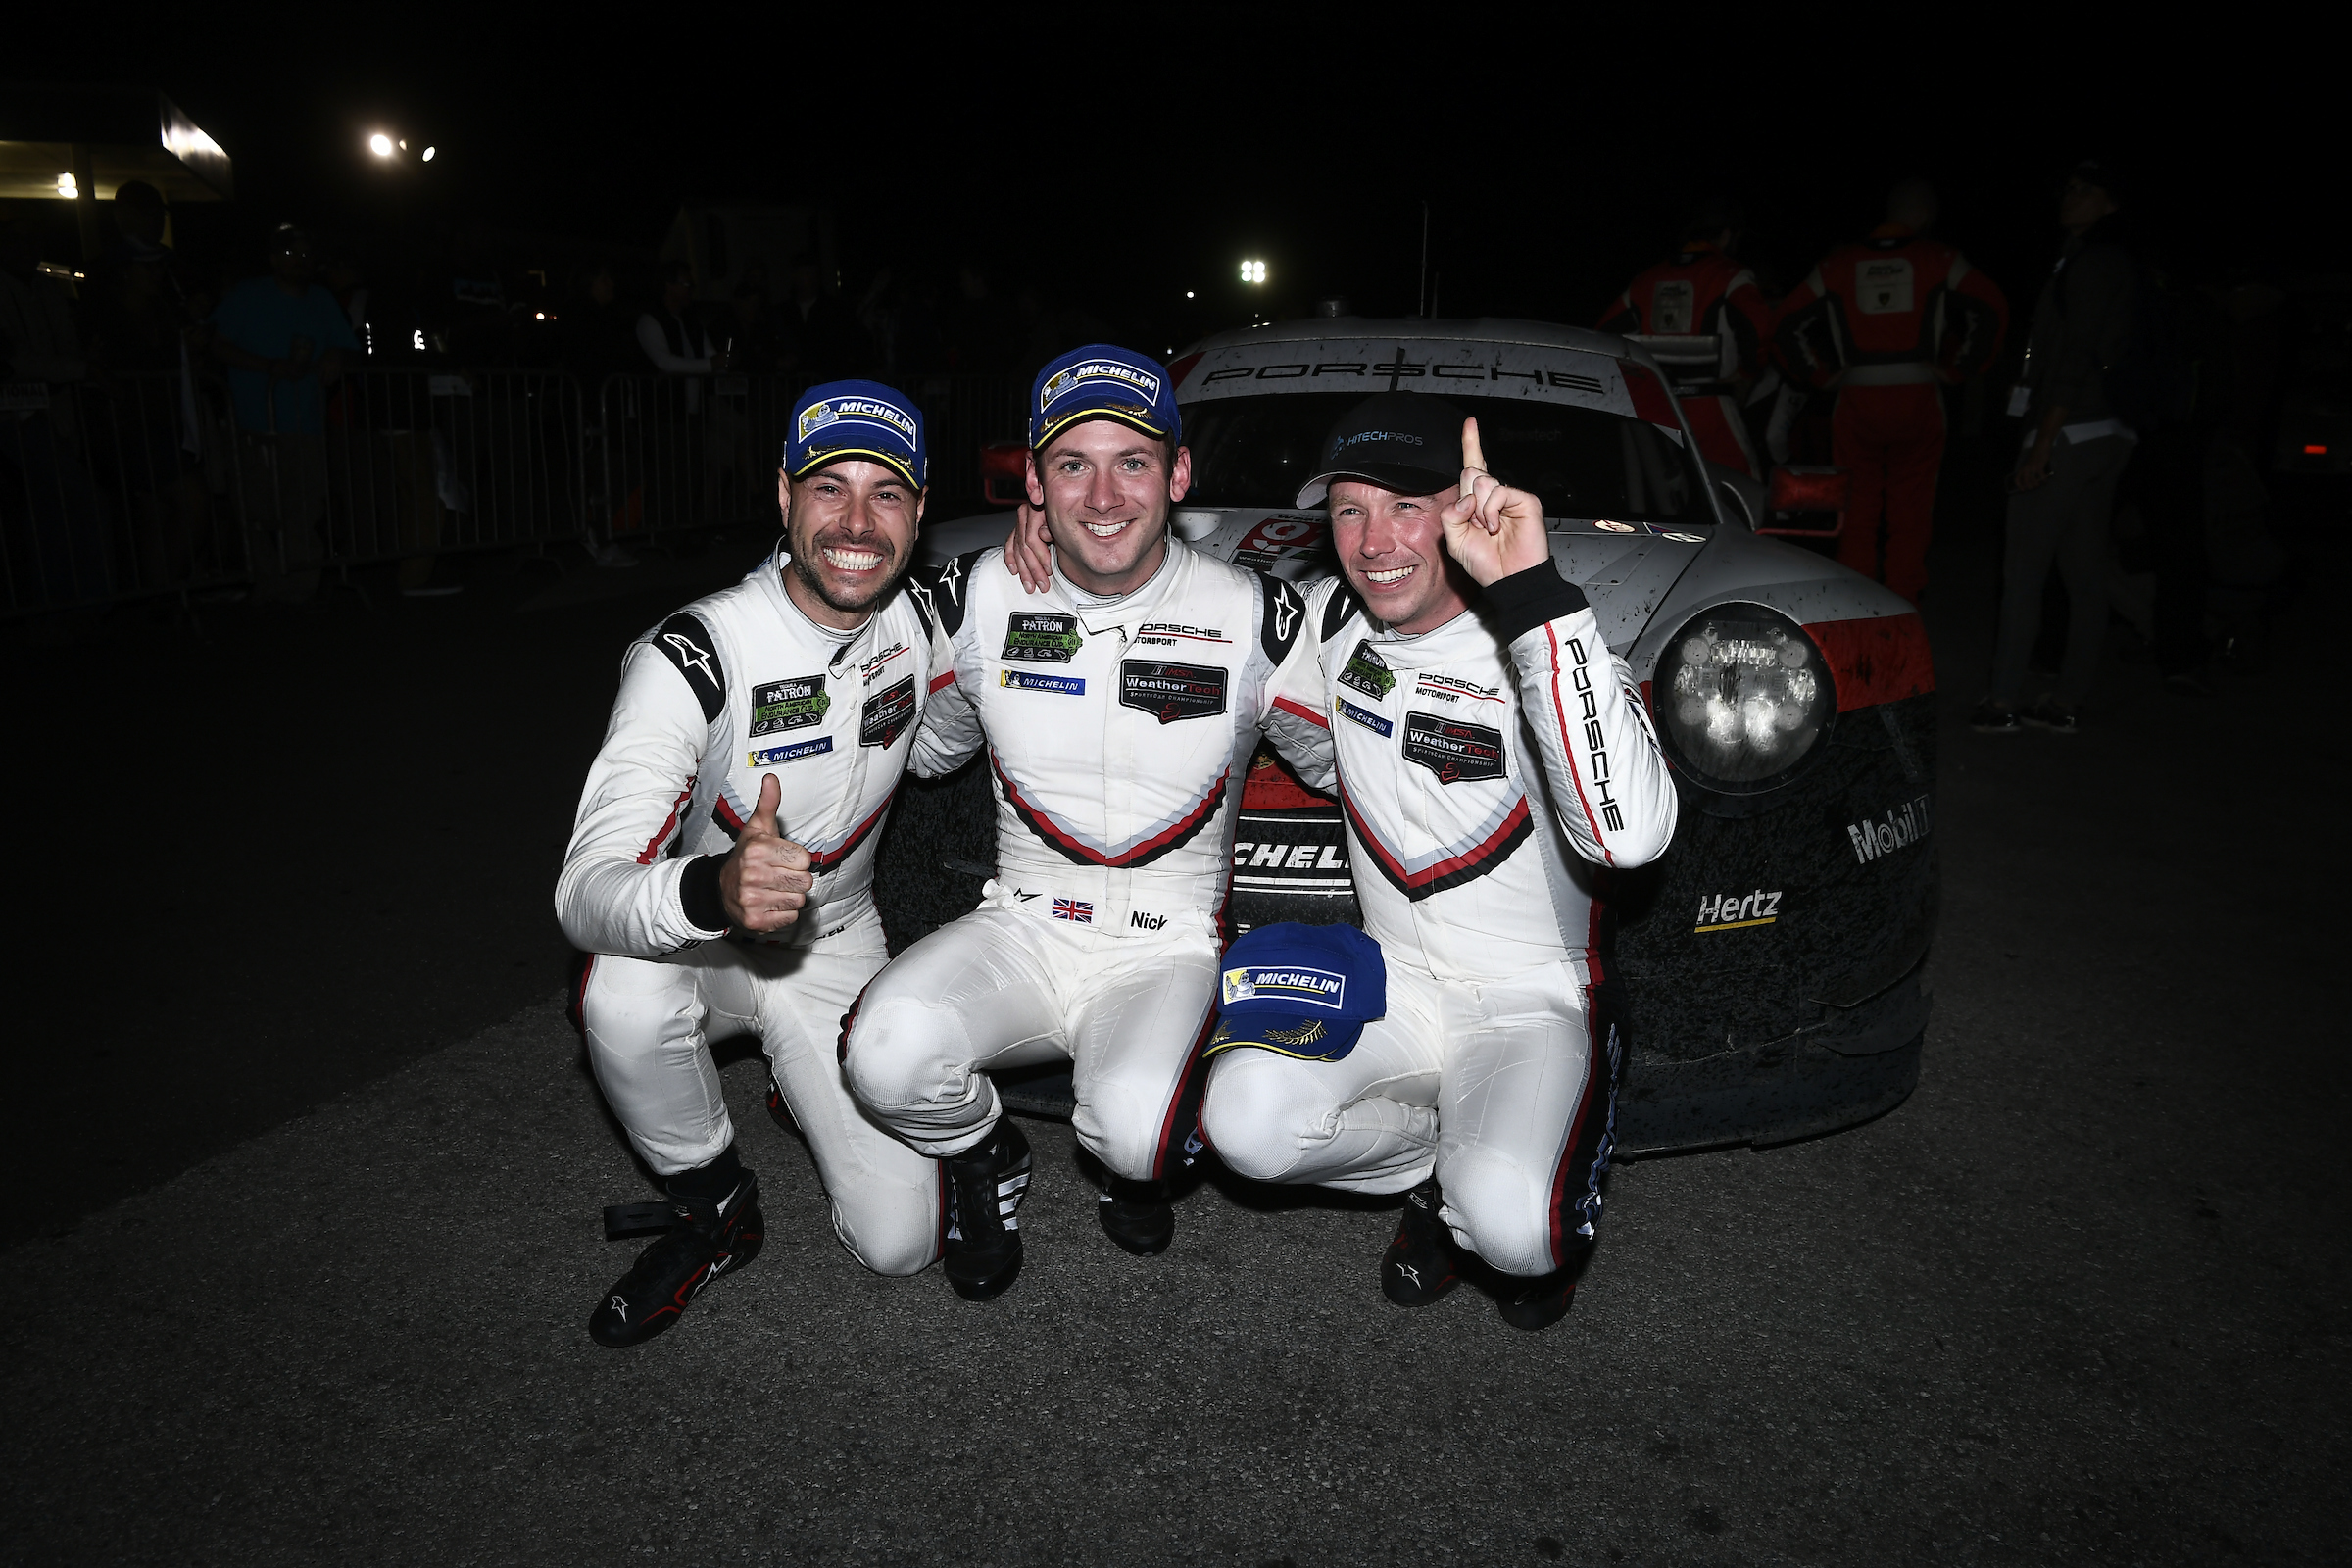 Video: Sebring 12 race recap